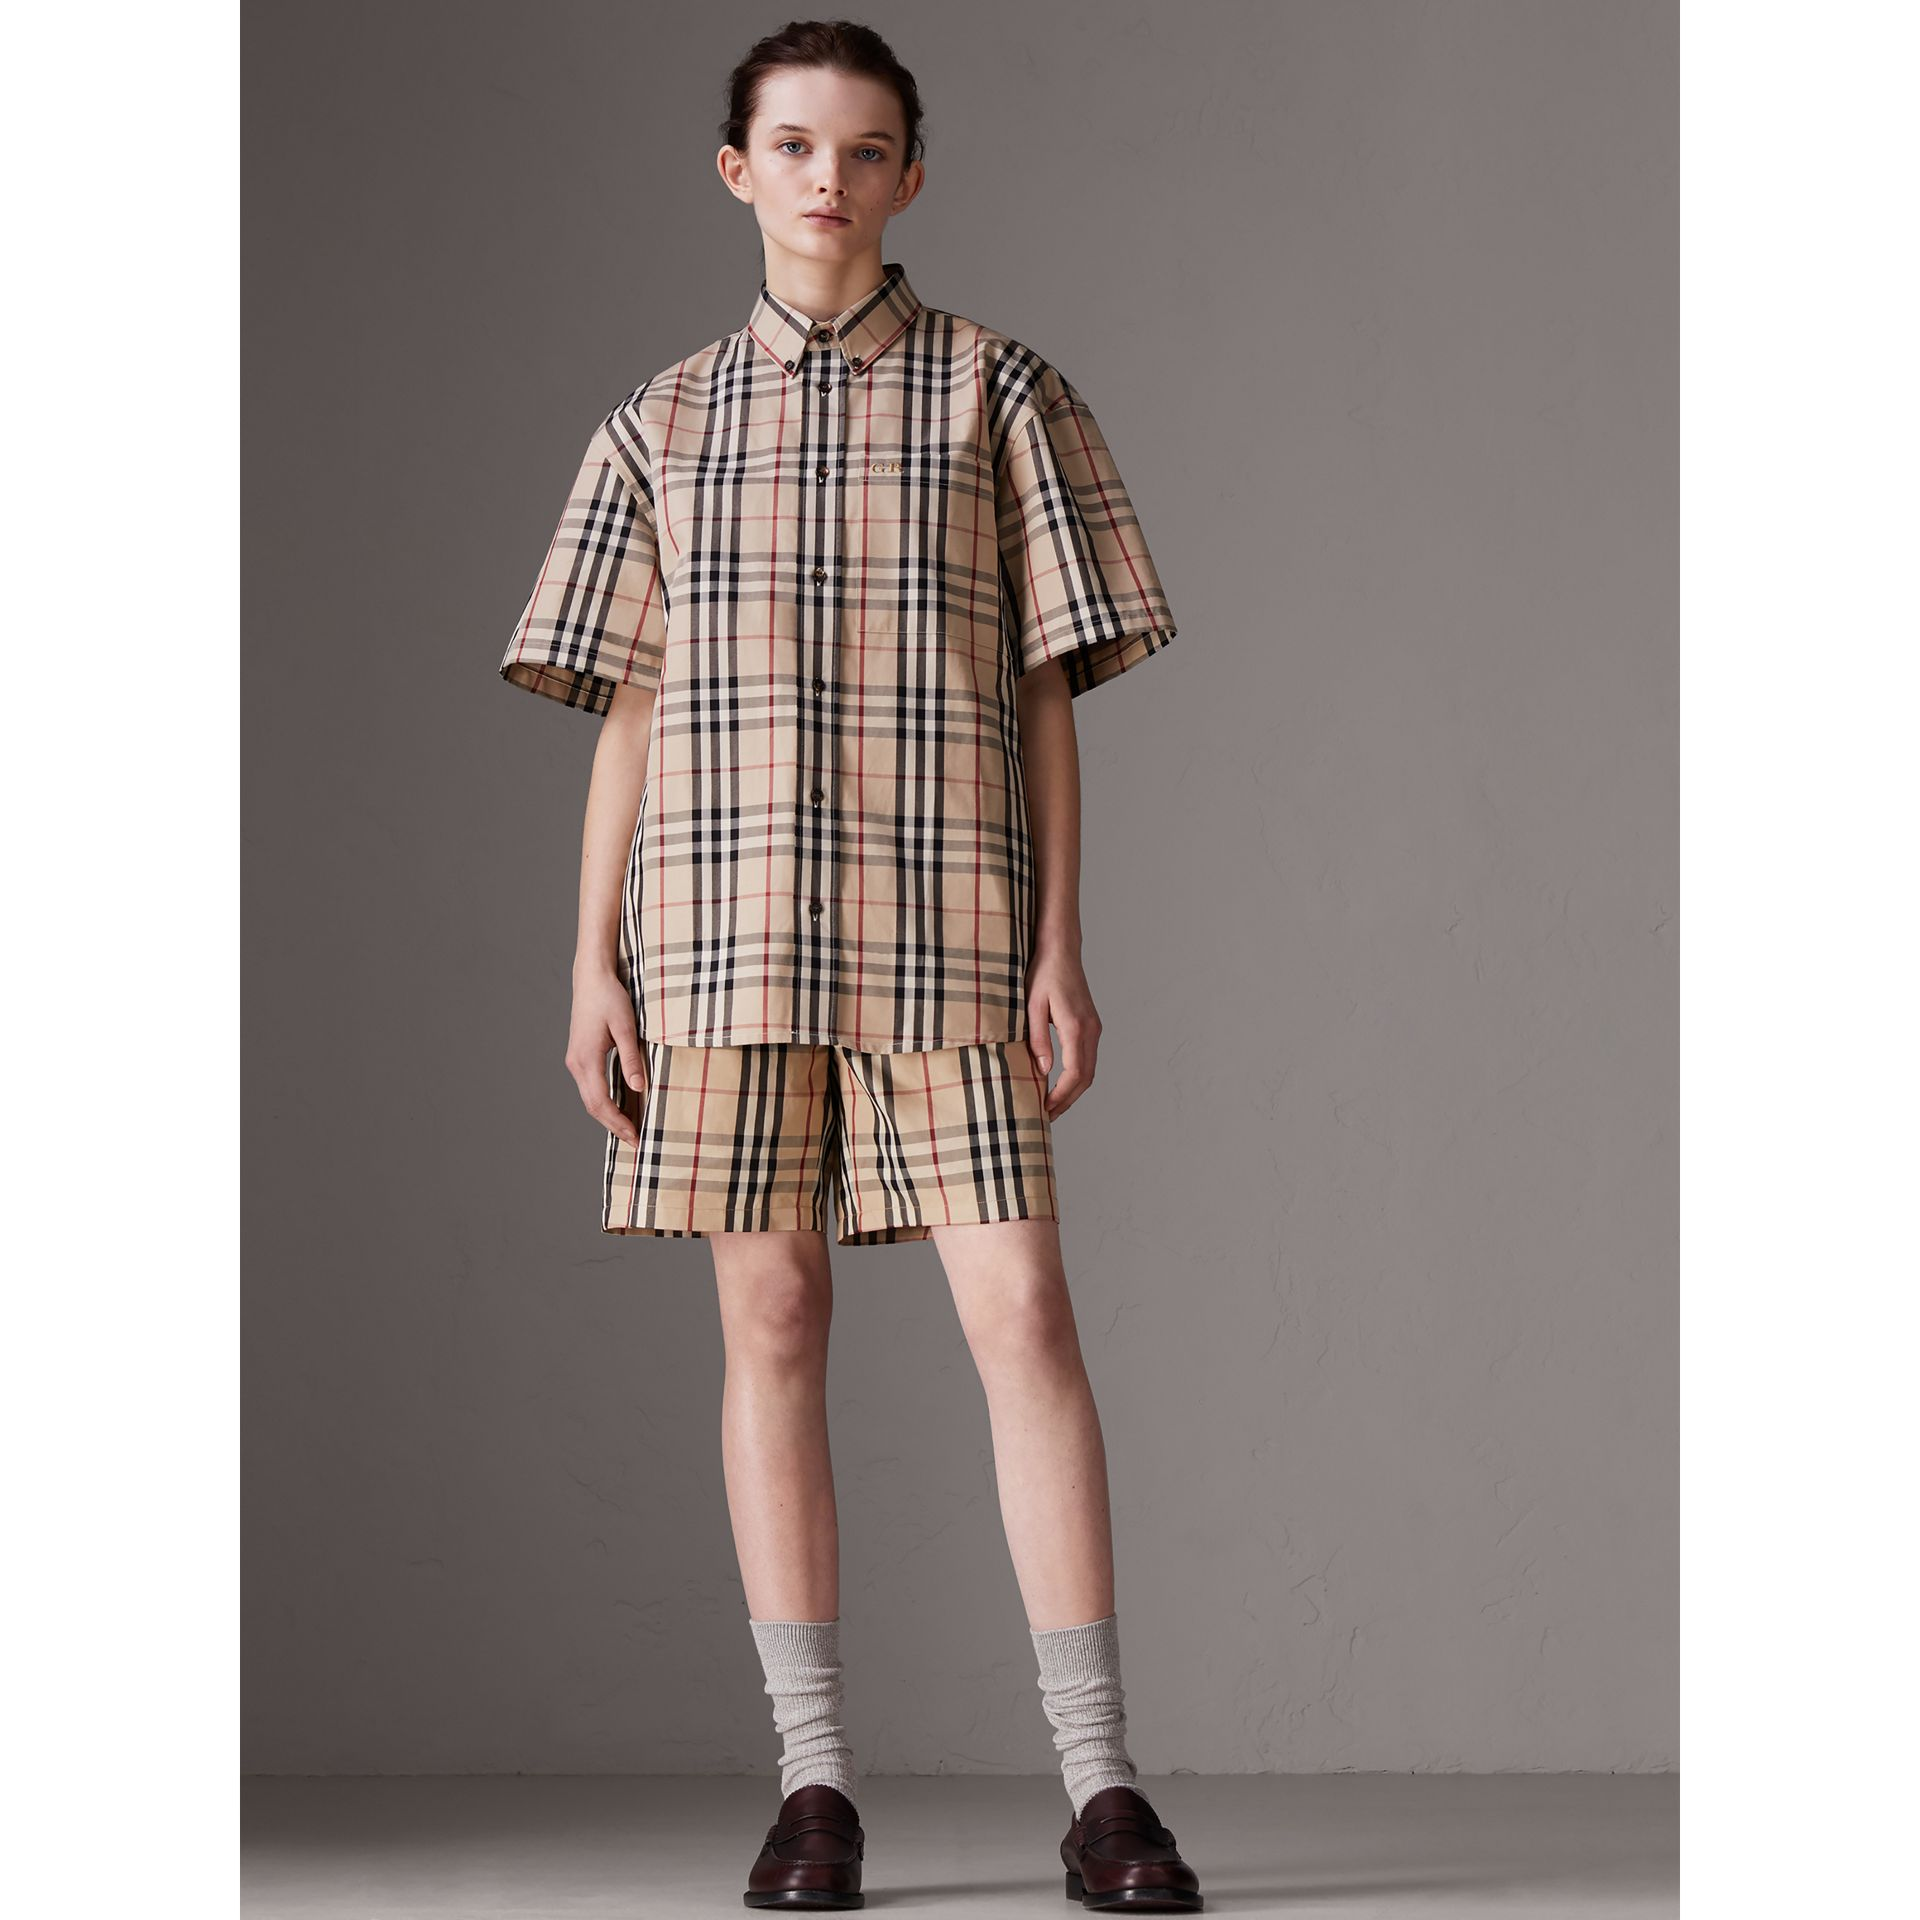 Gosha x Burberry Short-sleeve Check Shirt in Honey - Men | Burberry - gallery image 3